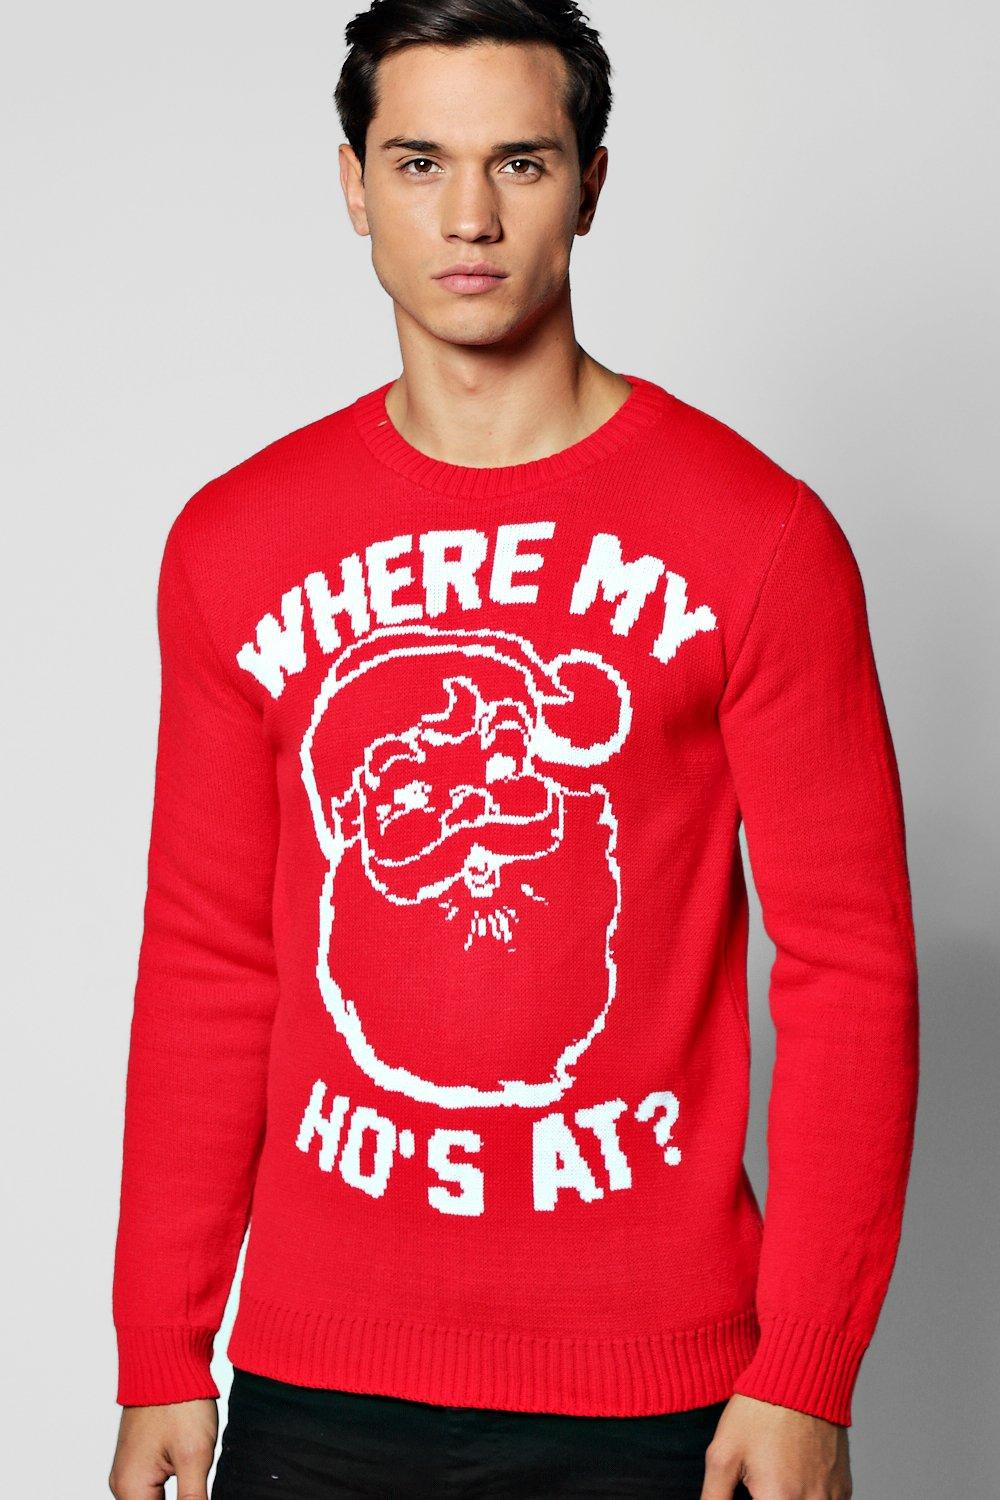 Where My Ho's At? Christmas Jumper